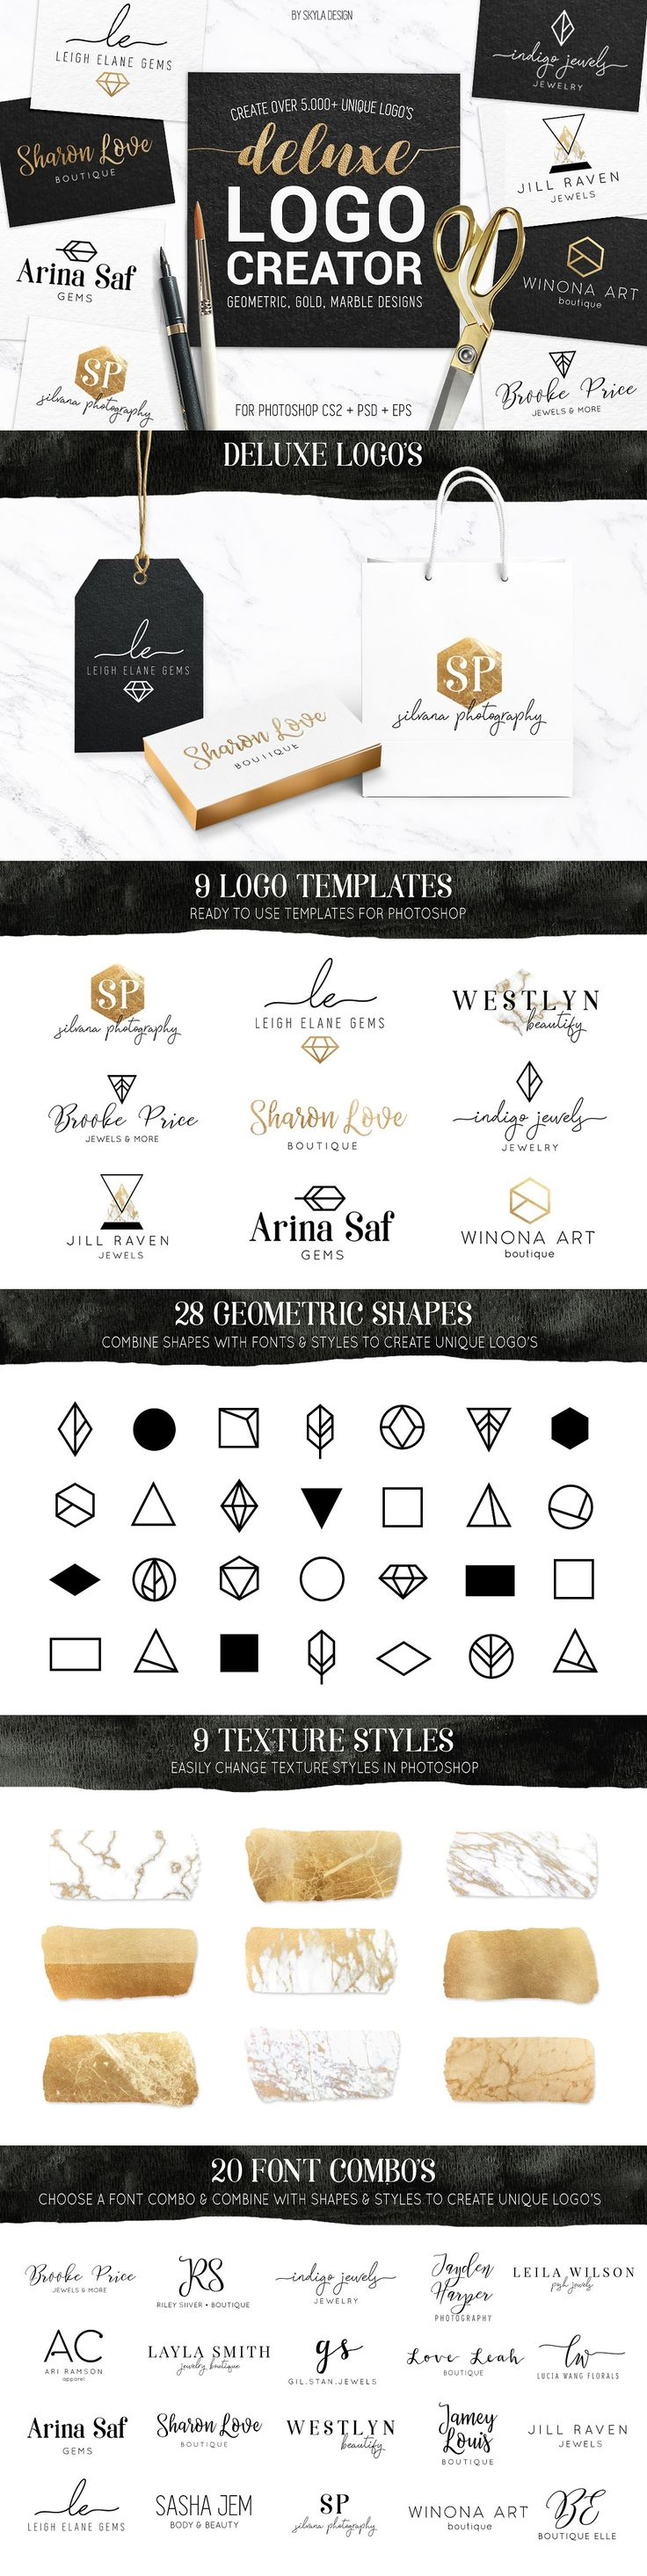 206 best logo design images on pinterest logo templates deluxe gold logo creator kit by skyla design on creativemarket biocorpaavc